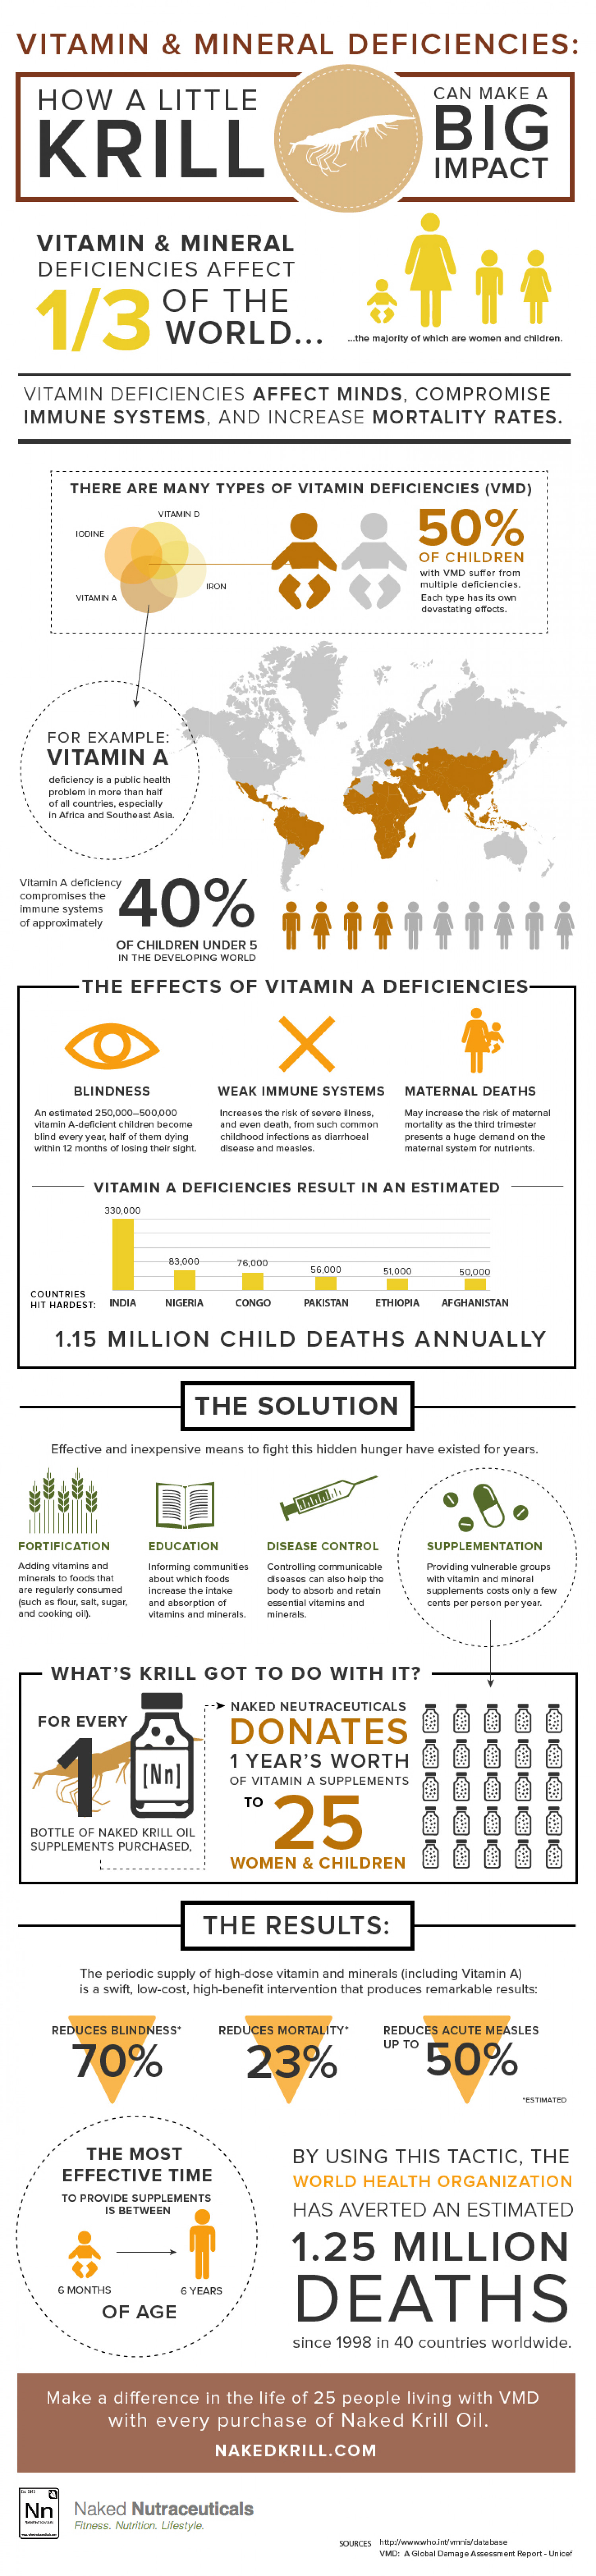 Naked Neutraceuticals Infographic